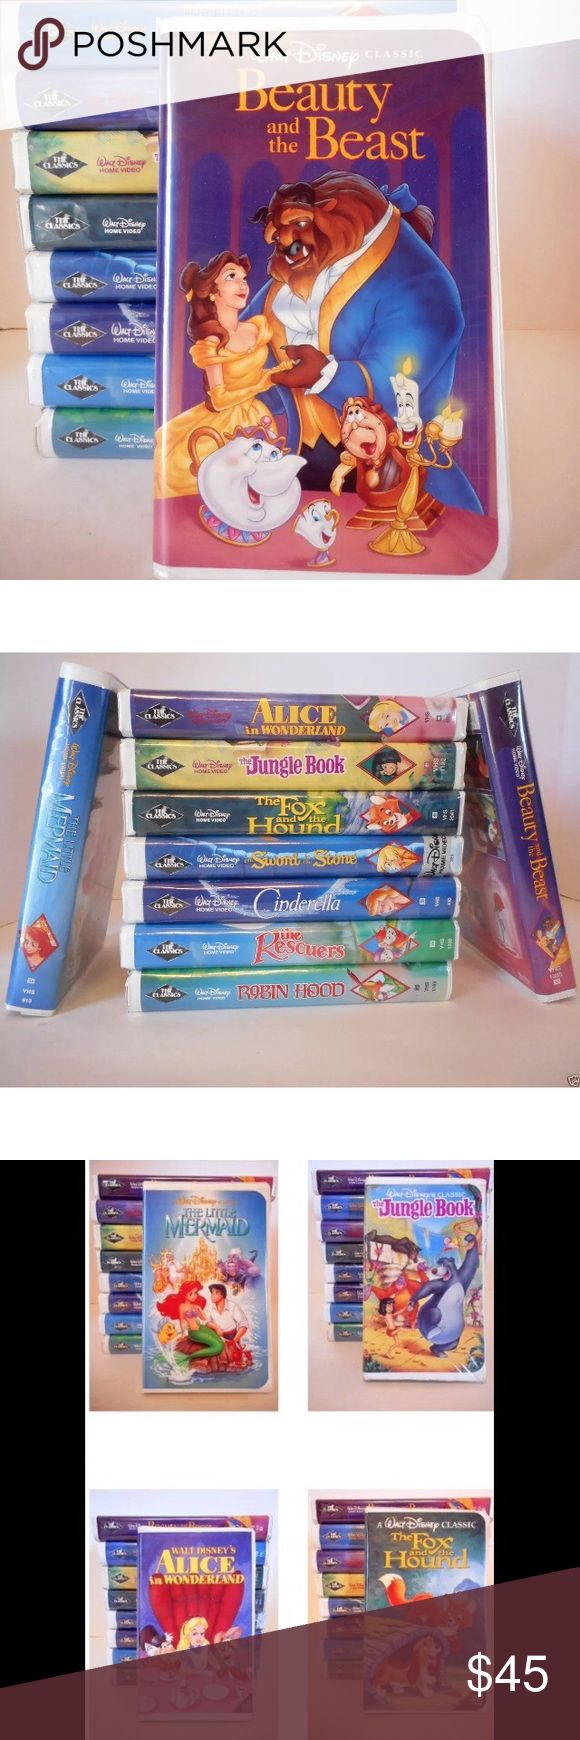 VHS Black Diamond Edition Classic Disney Videos Beauty and the Beast & other VHS Black Diamond Edition Classic Disney Videos Lot Walt Disney Black Diamond Classic VHS Video Lot - Set of 9  Includes: Beauty And The Beast The Little Mermaid Alice In Wonderland  Cinderella The Jungle Book Fox And The Hound Robin Hood The Sword and the Stone The Rescuers Disney Other